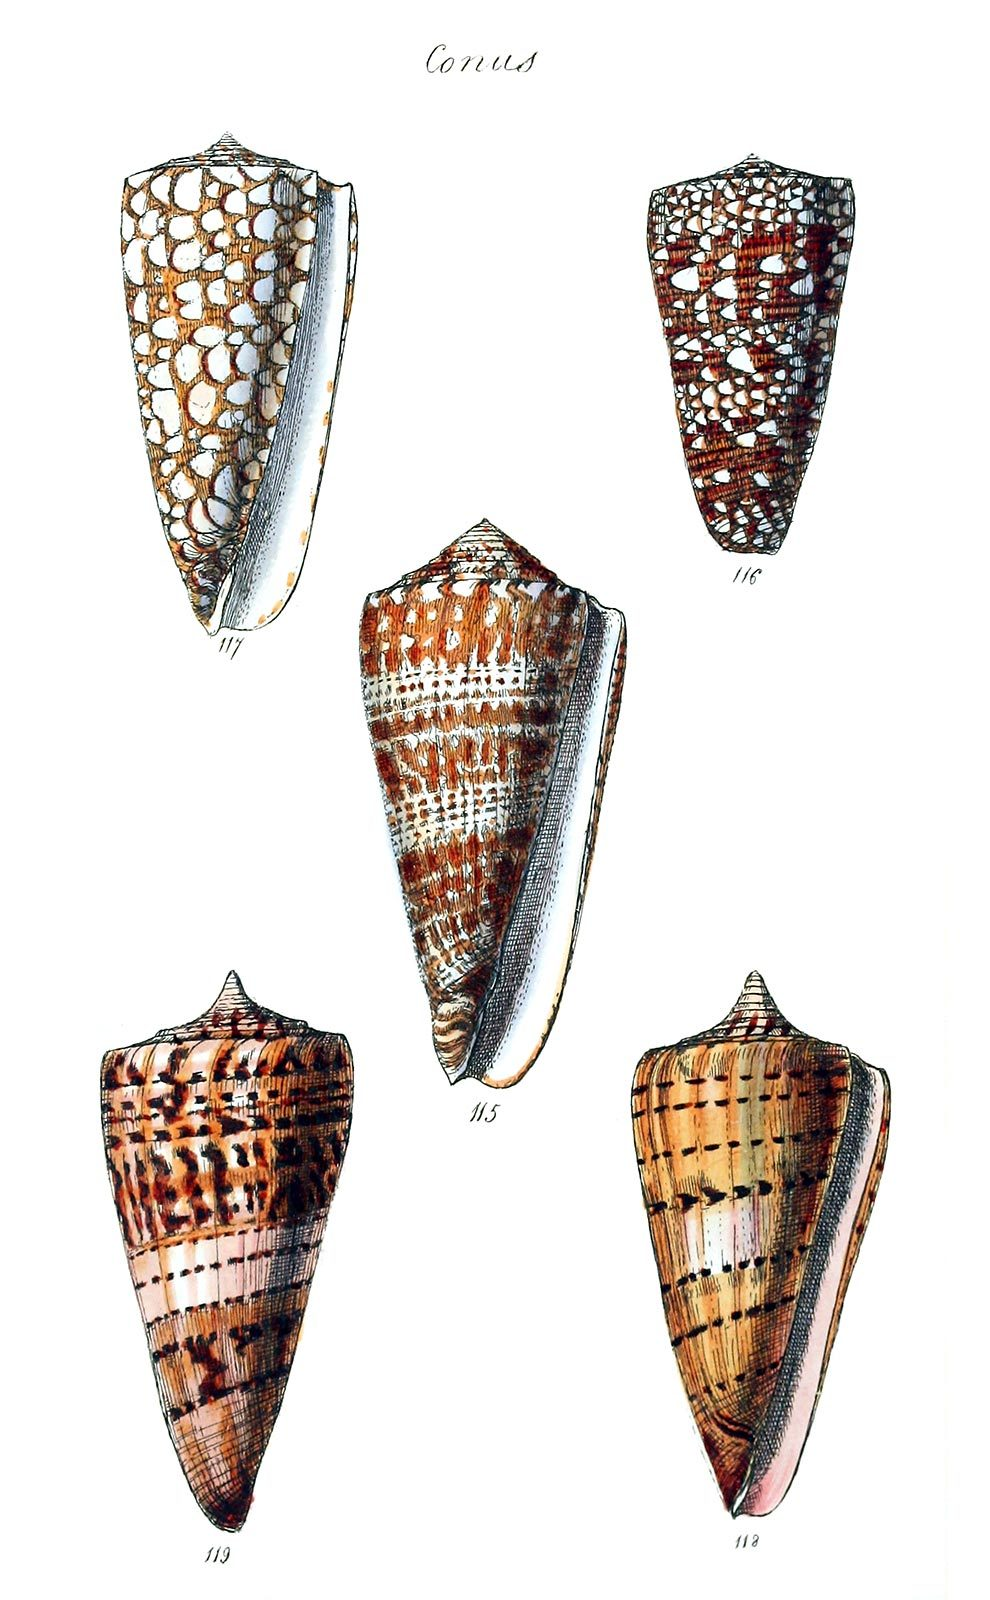 oldbookillustrations:  Conus.  From The conchological illustrations, by George Brettingham Sowerby, London, 1832.  (Source: archive.org)